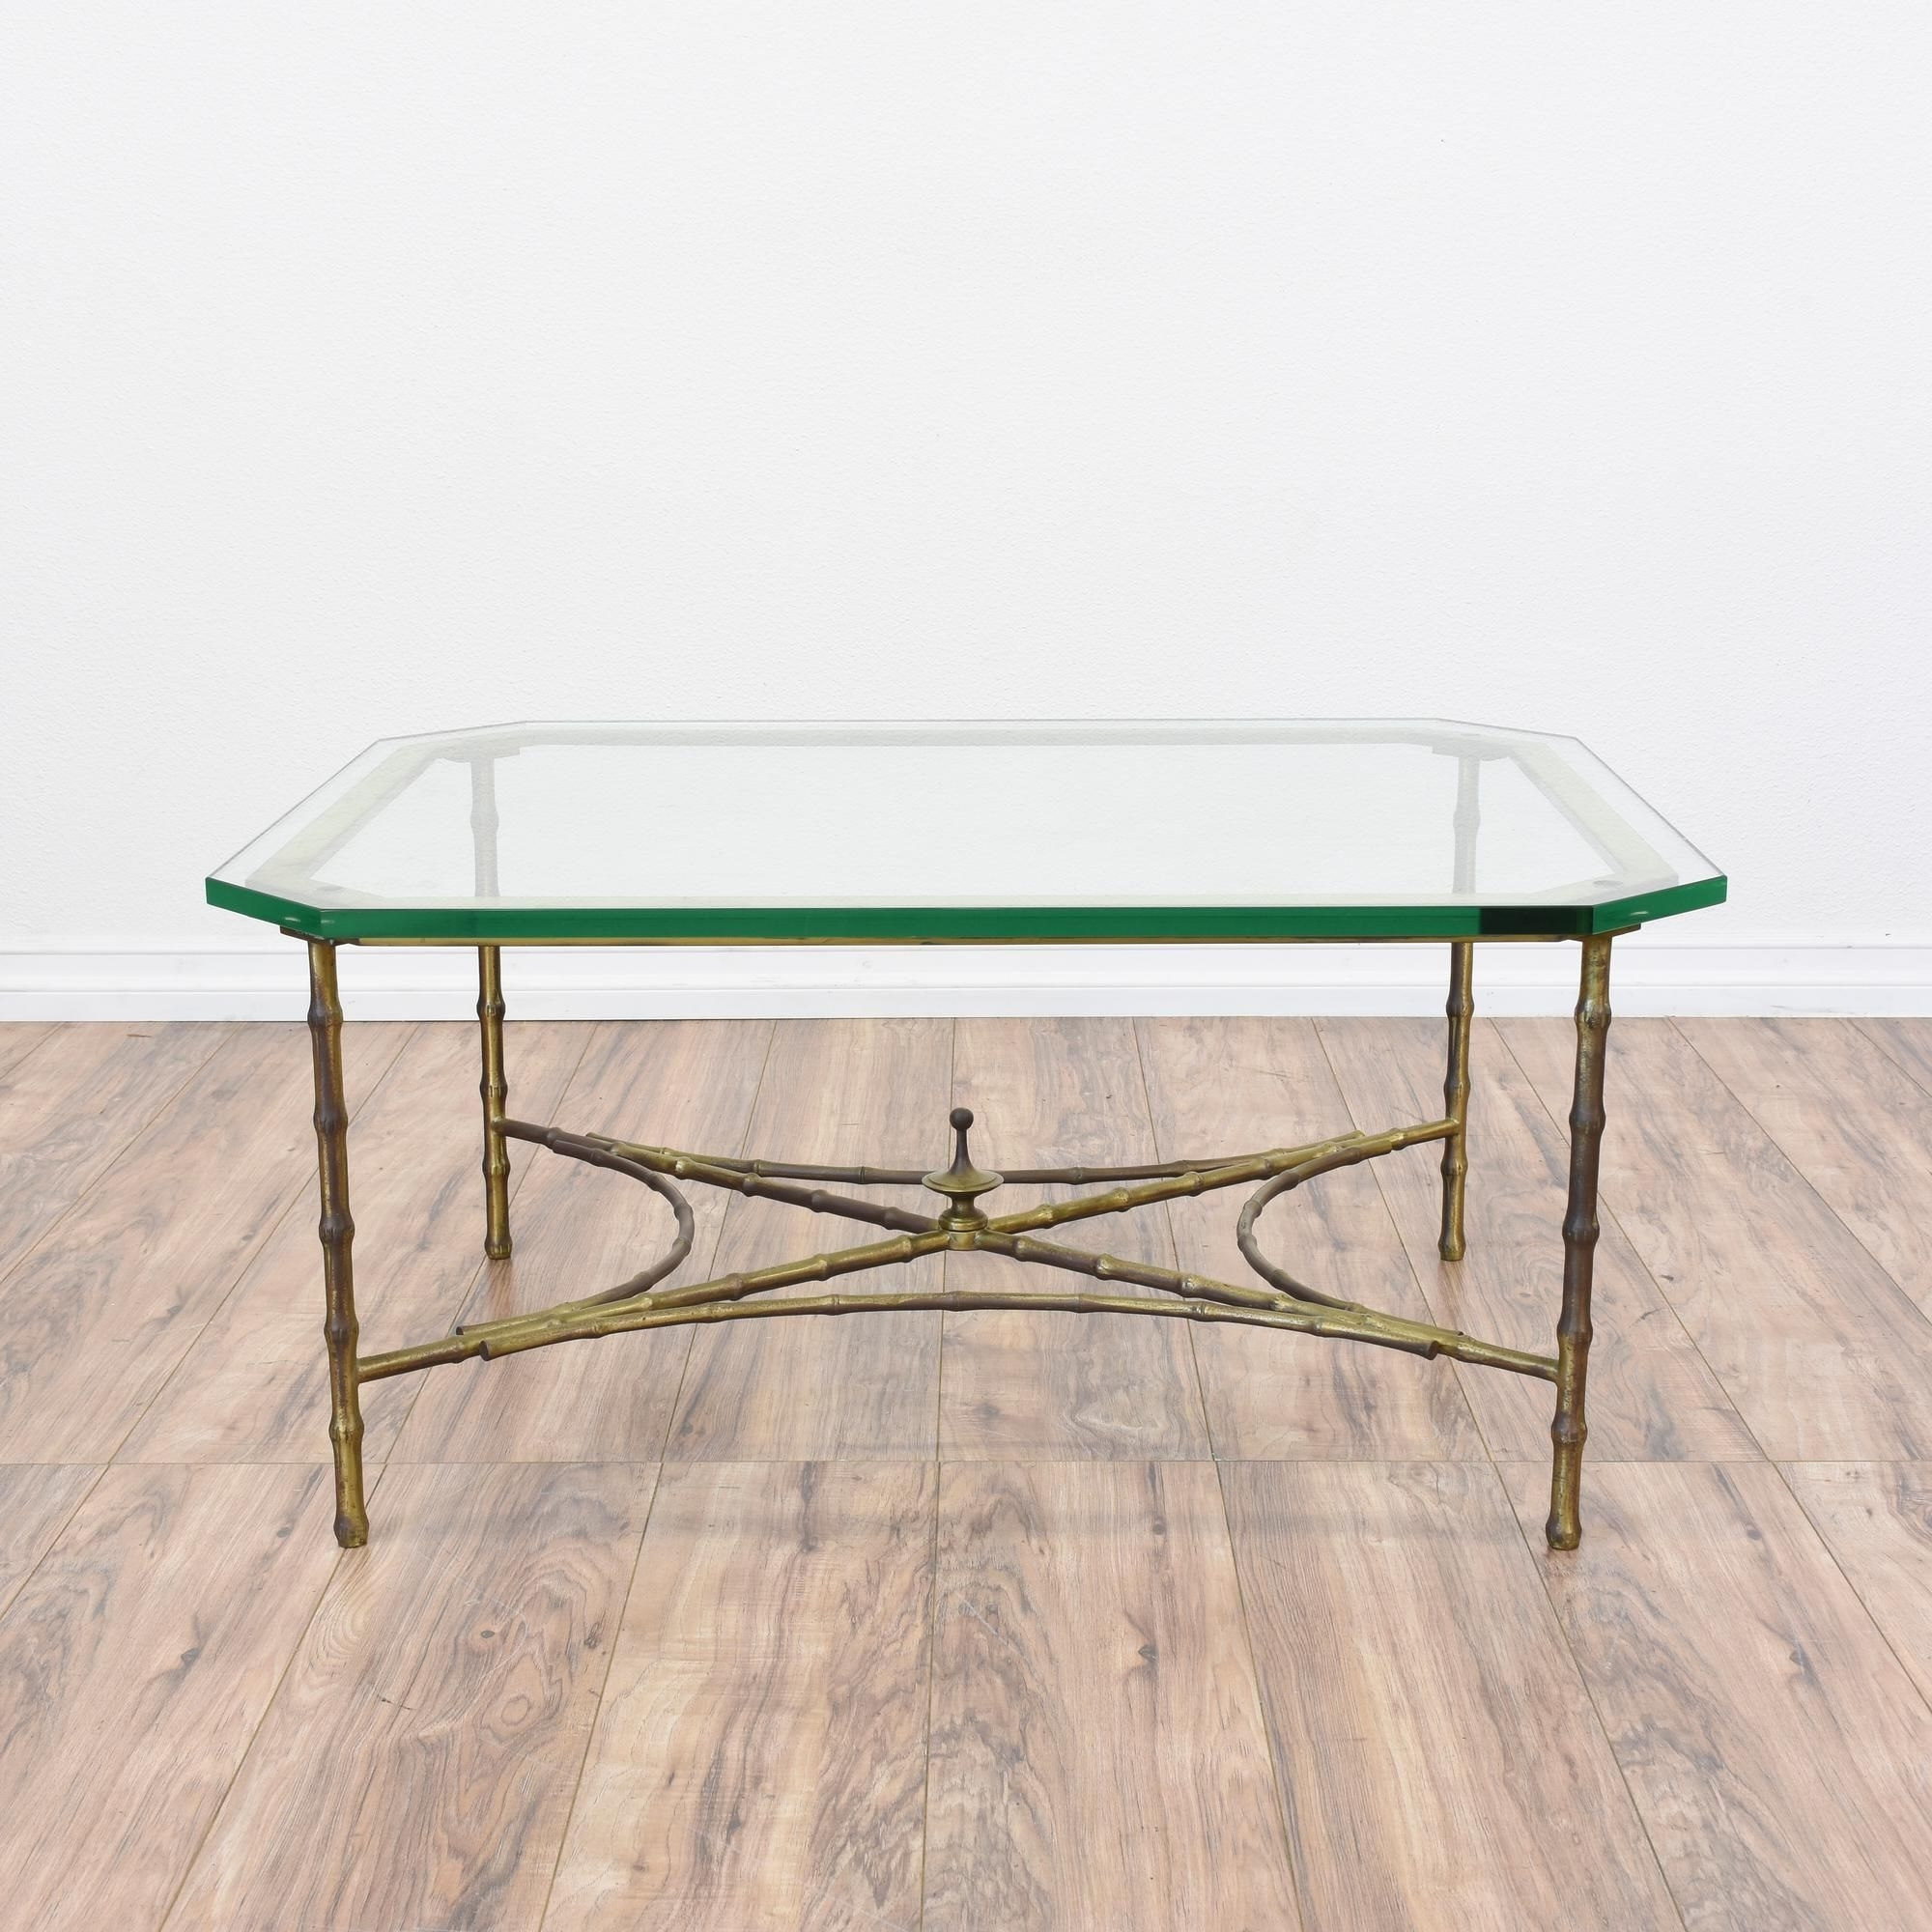 This Regency Coffee Table Is Featured In A Metal With A Shiny Brass throughout Rectangular Brass Finish and Glass Coffee Tables (Image 26 of 30)